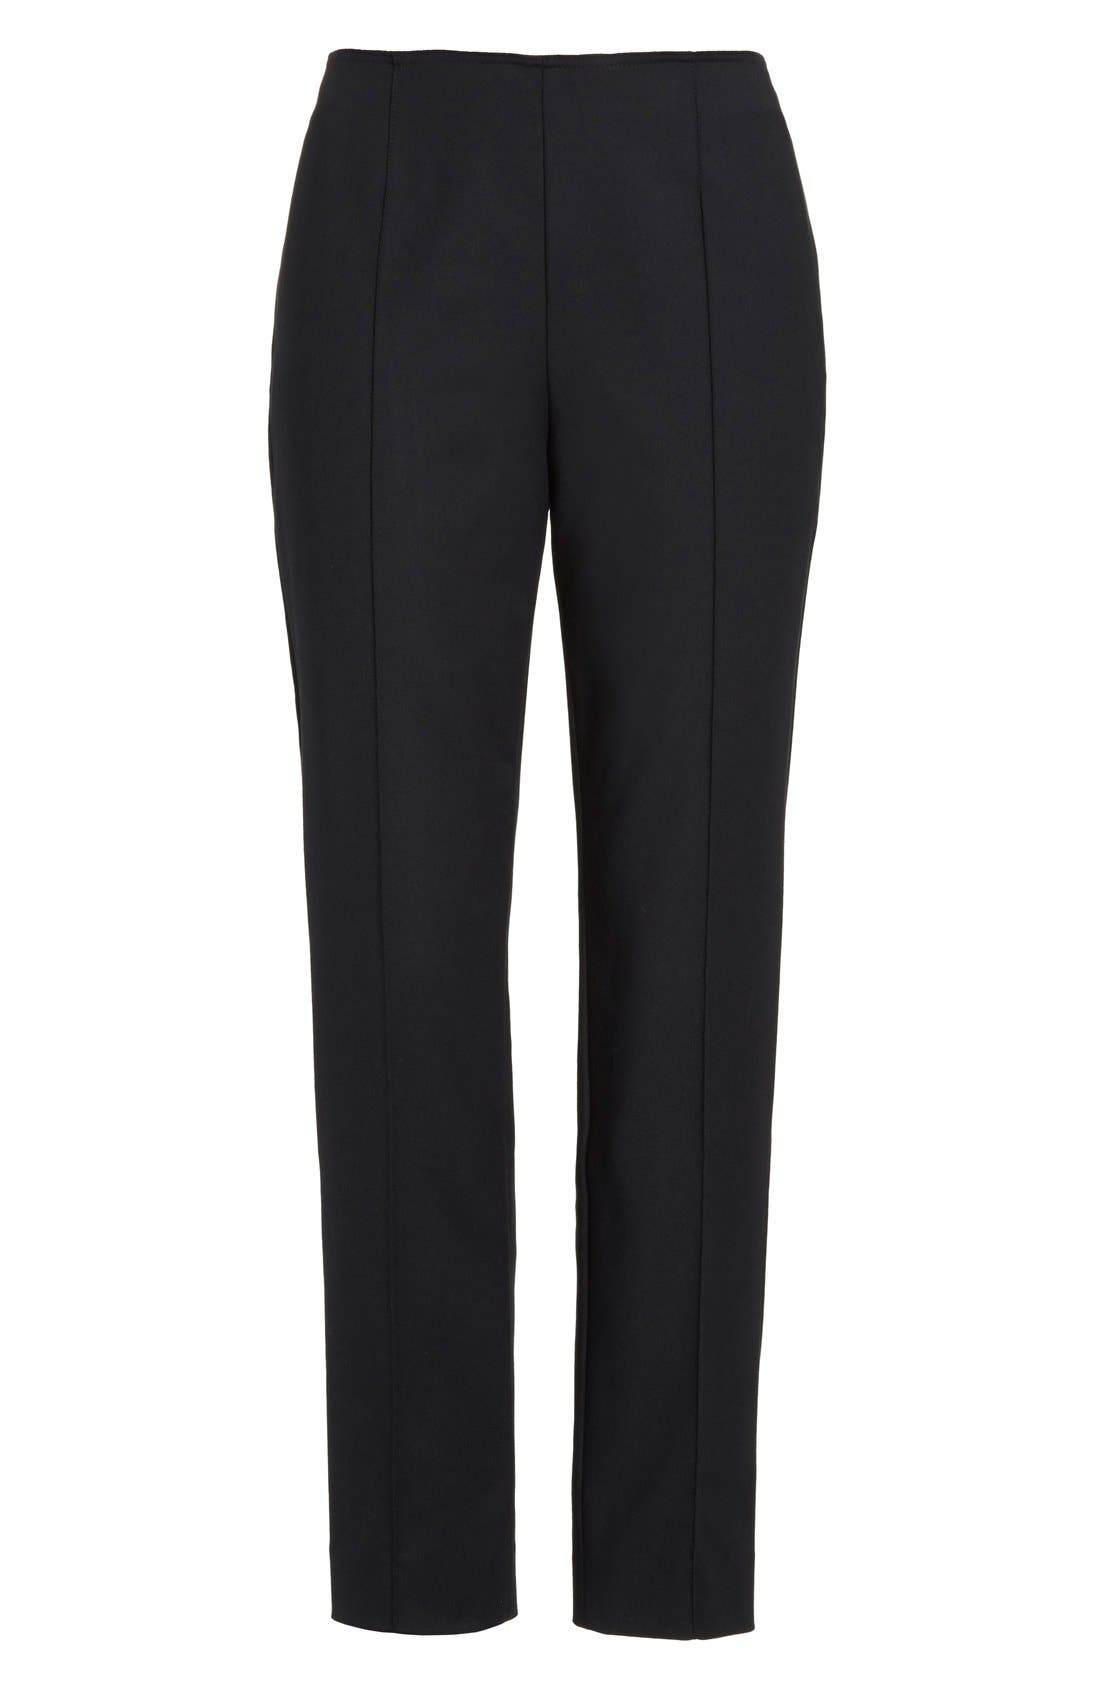 John Collection 'Alexa' Stretch Micro Ottoman Ankle Pants,                             Alternate thumbnail 5, color,                             CAVIAR